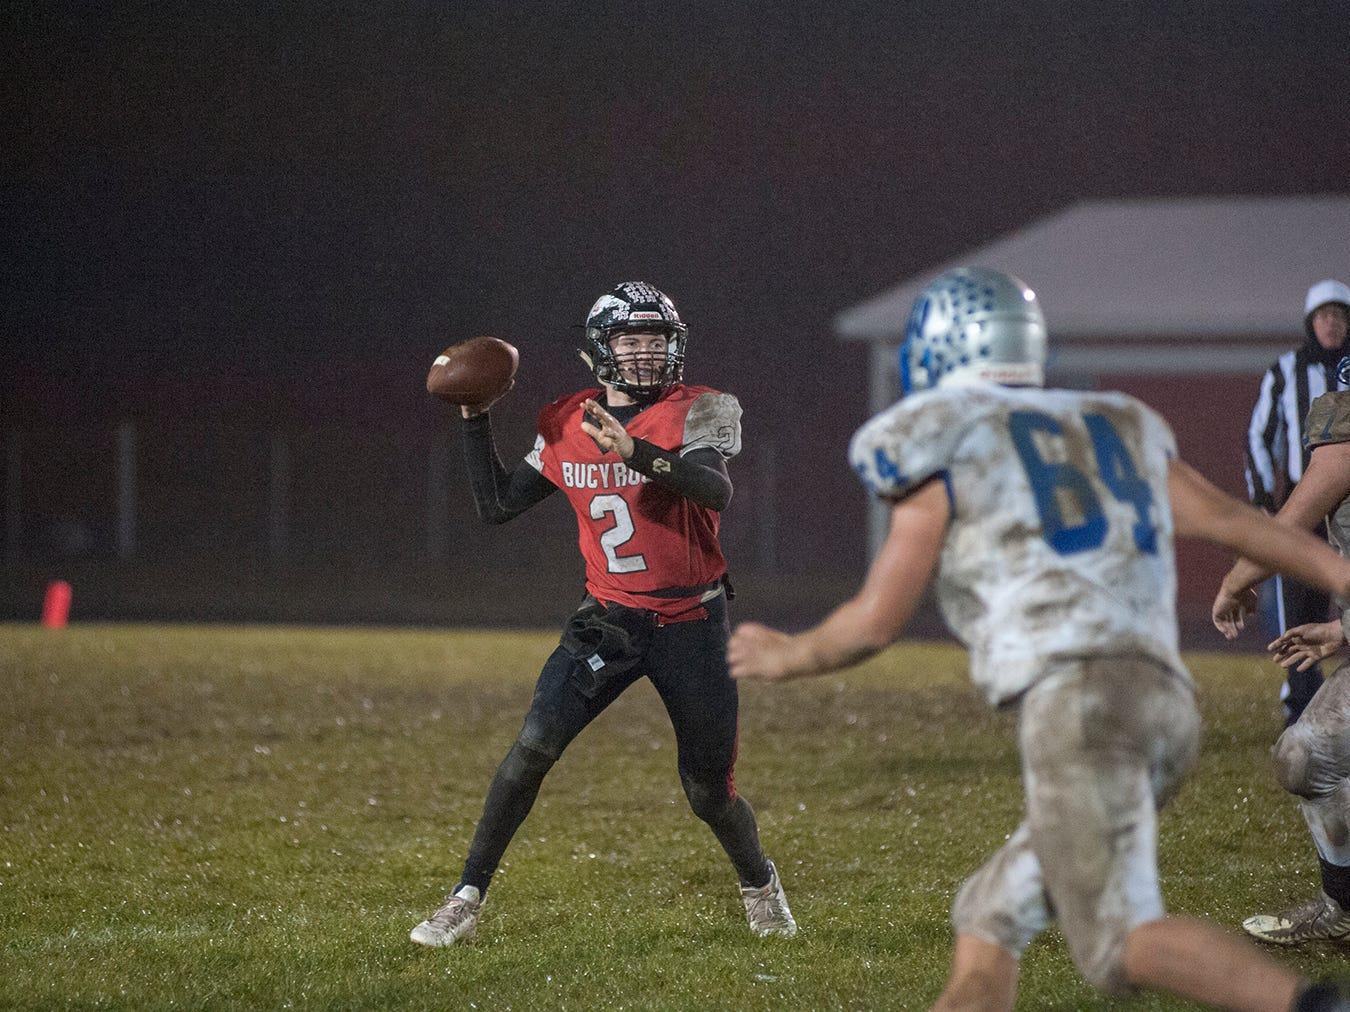 Bucyrus' Ben Seibert drops back for a pass.